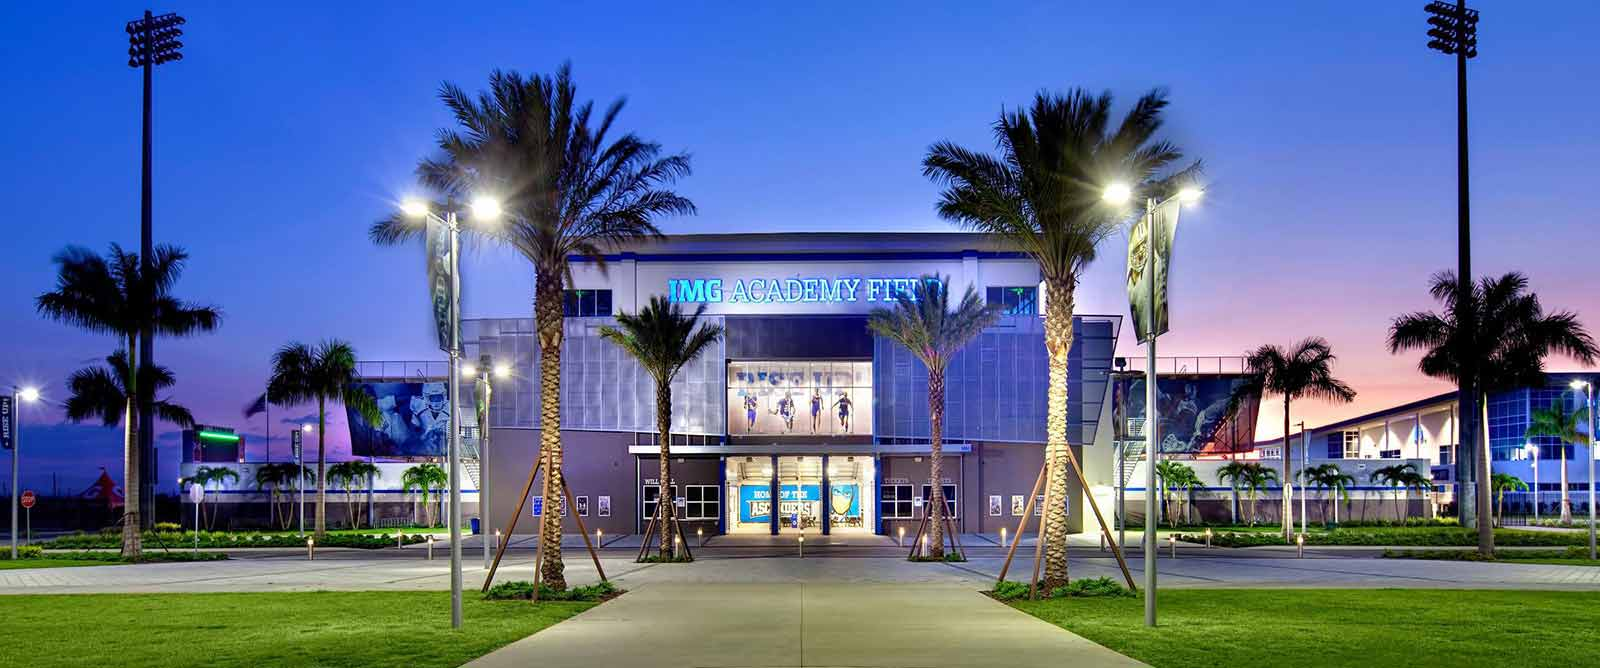 Sunset view of the IMG Academy stadium entrance surrounded by palm trees